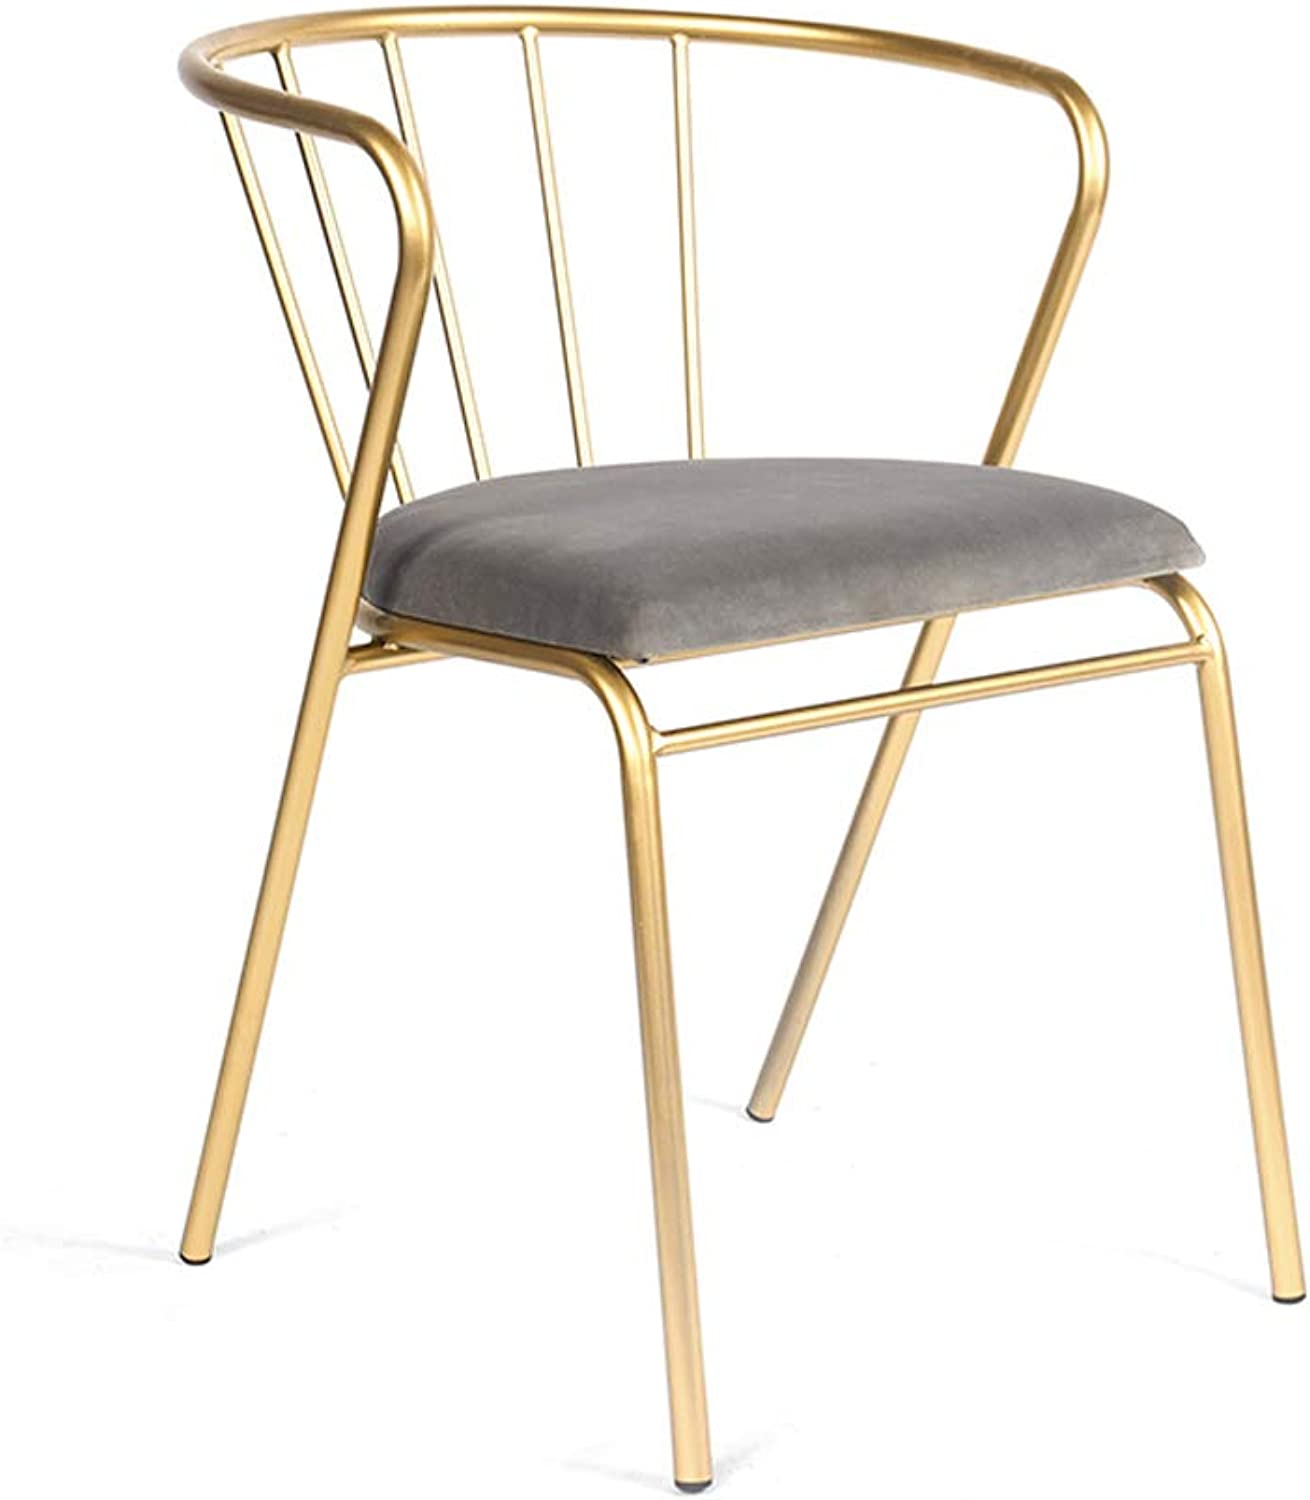 Lxn Modern Simplicity Design golden Wrought Iron Dining Chair,Fabric Cushion Metal Legs,Dining Room, Kitchen, Bedroom, Lounge Side Economic Type Chairs - 1pcs